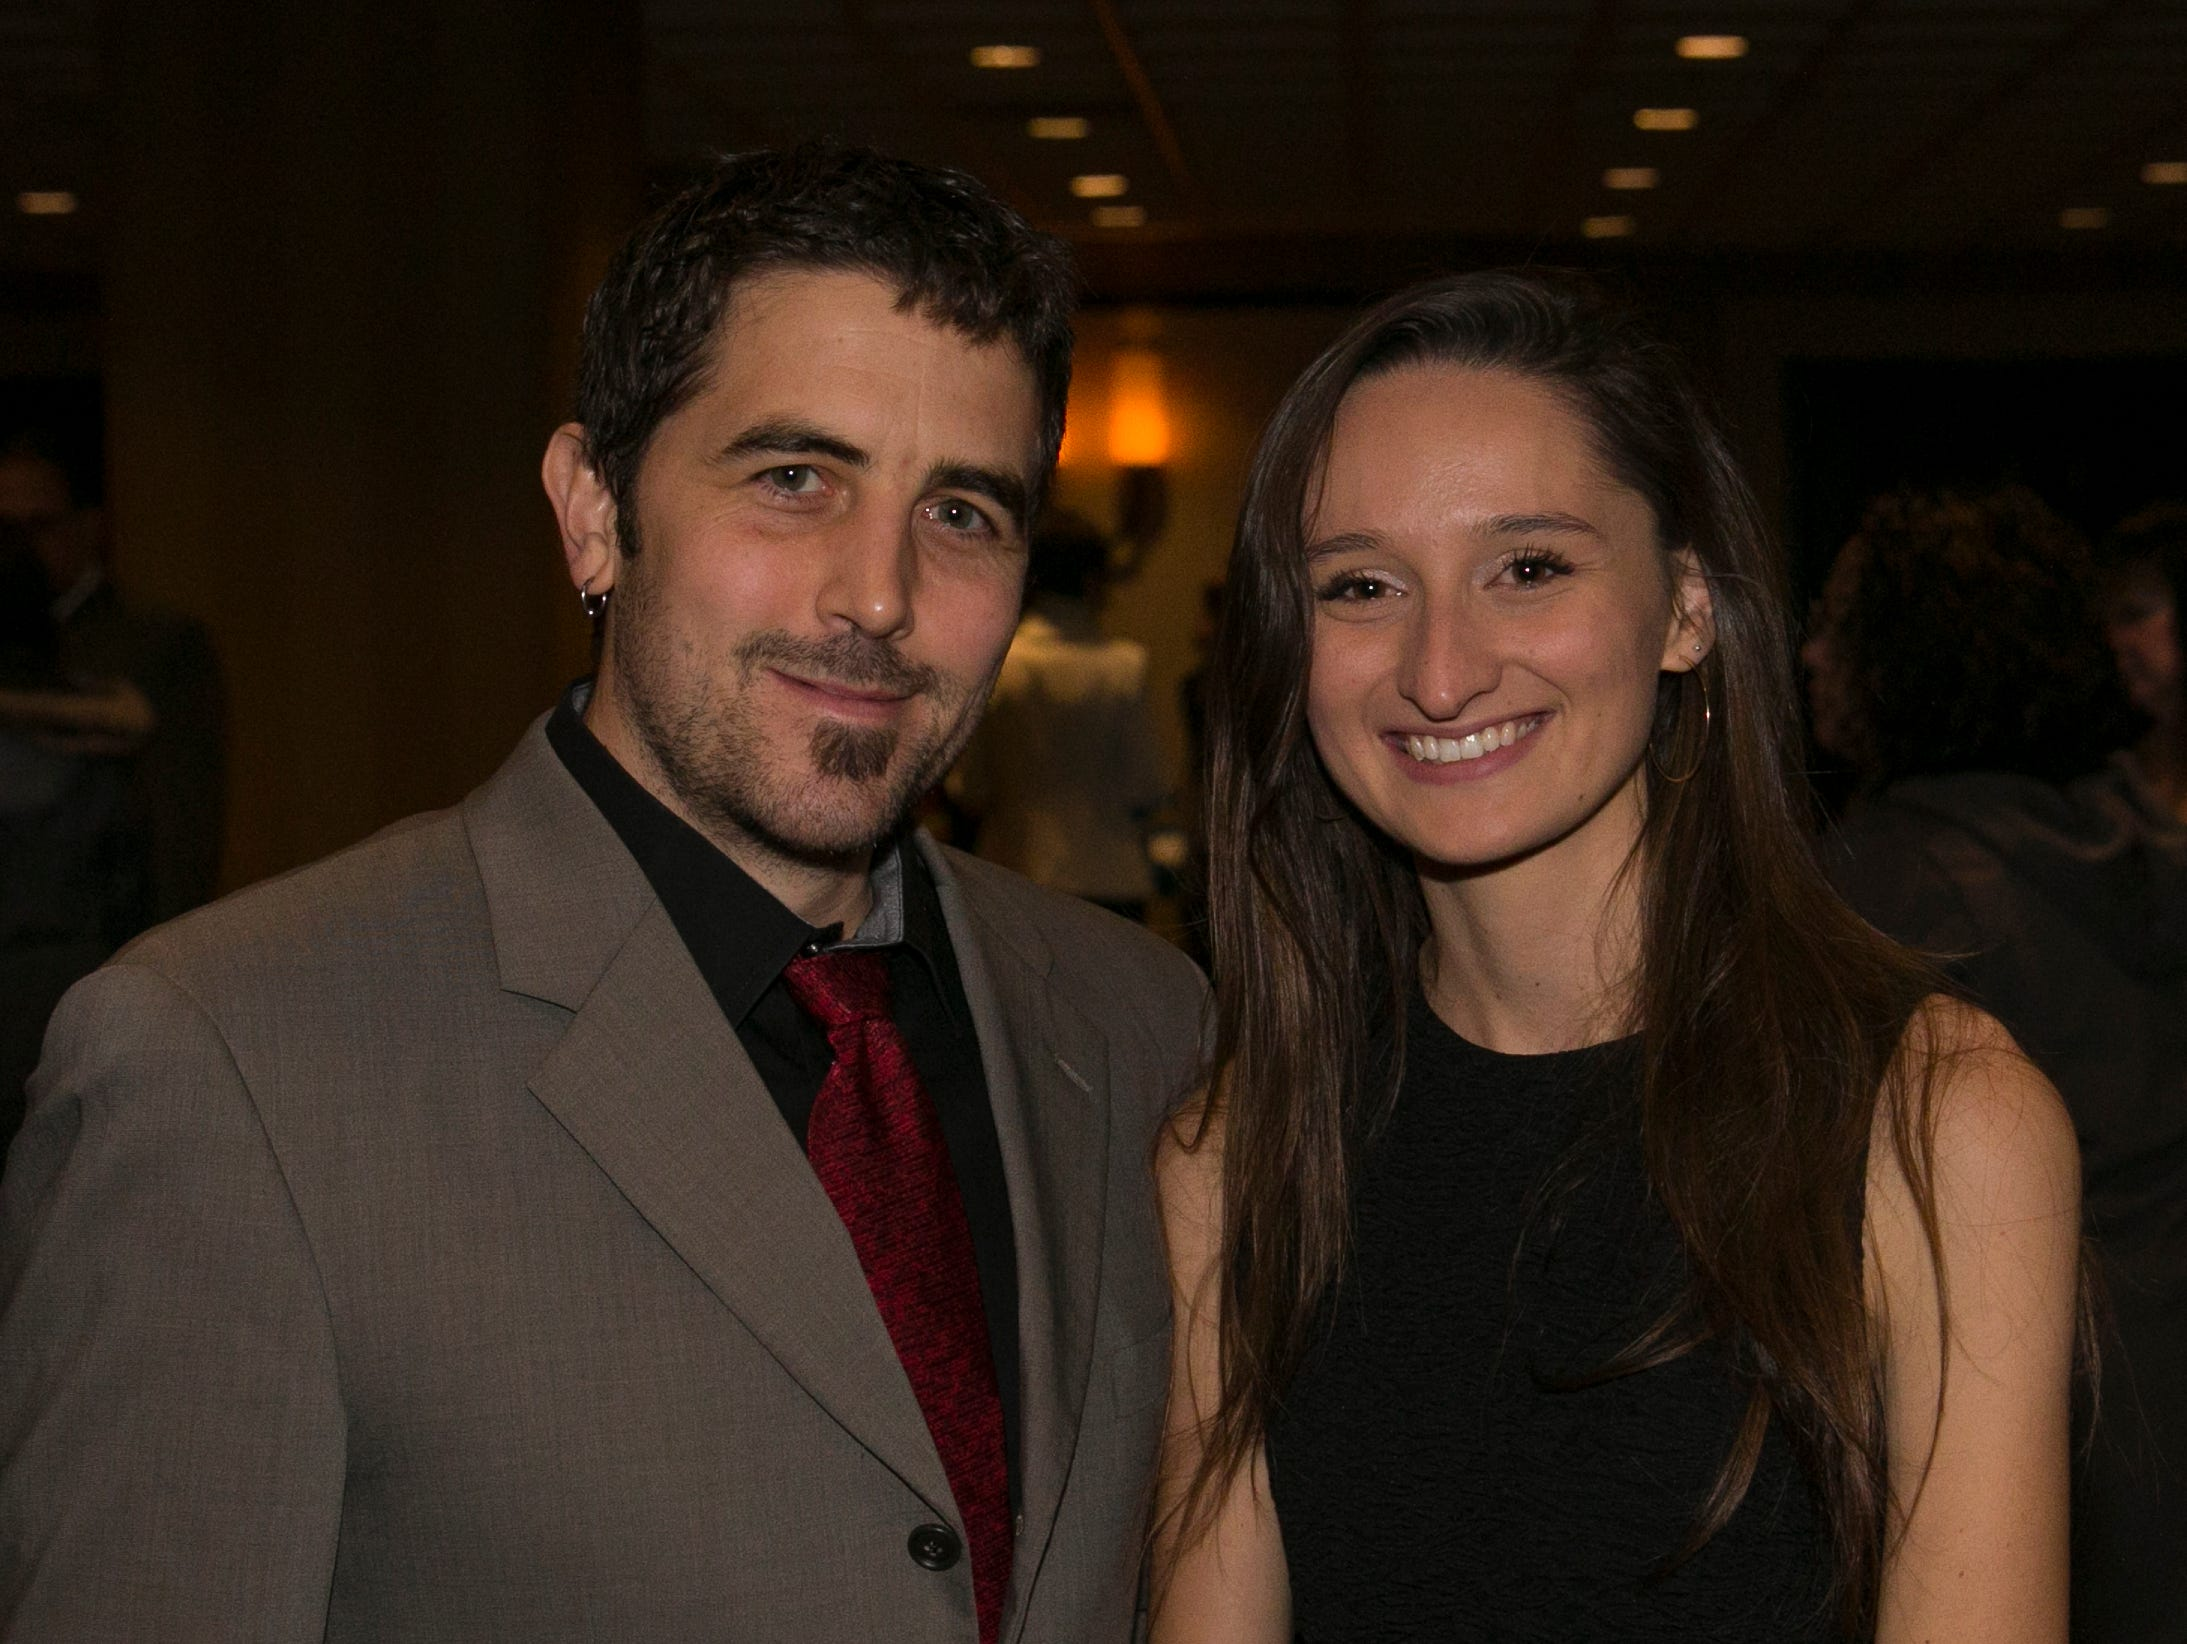 Dan Pike and Hannah Ottenhoe during the 31st Annual Martin Luther King, Jr. Birthday Celebration Dinner at the Atlantis Casino Resort Spa on Monday, January 21, 2109 in Reno, Nevada.